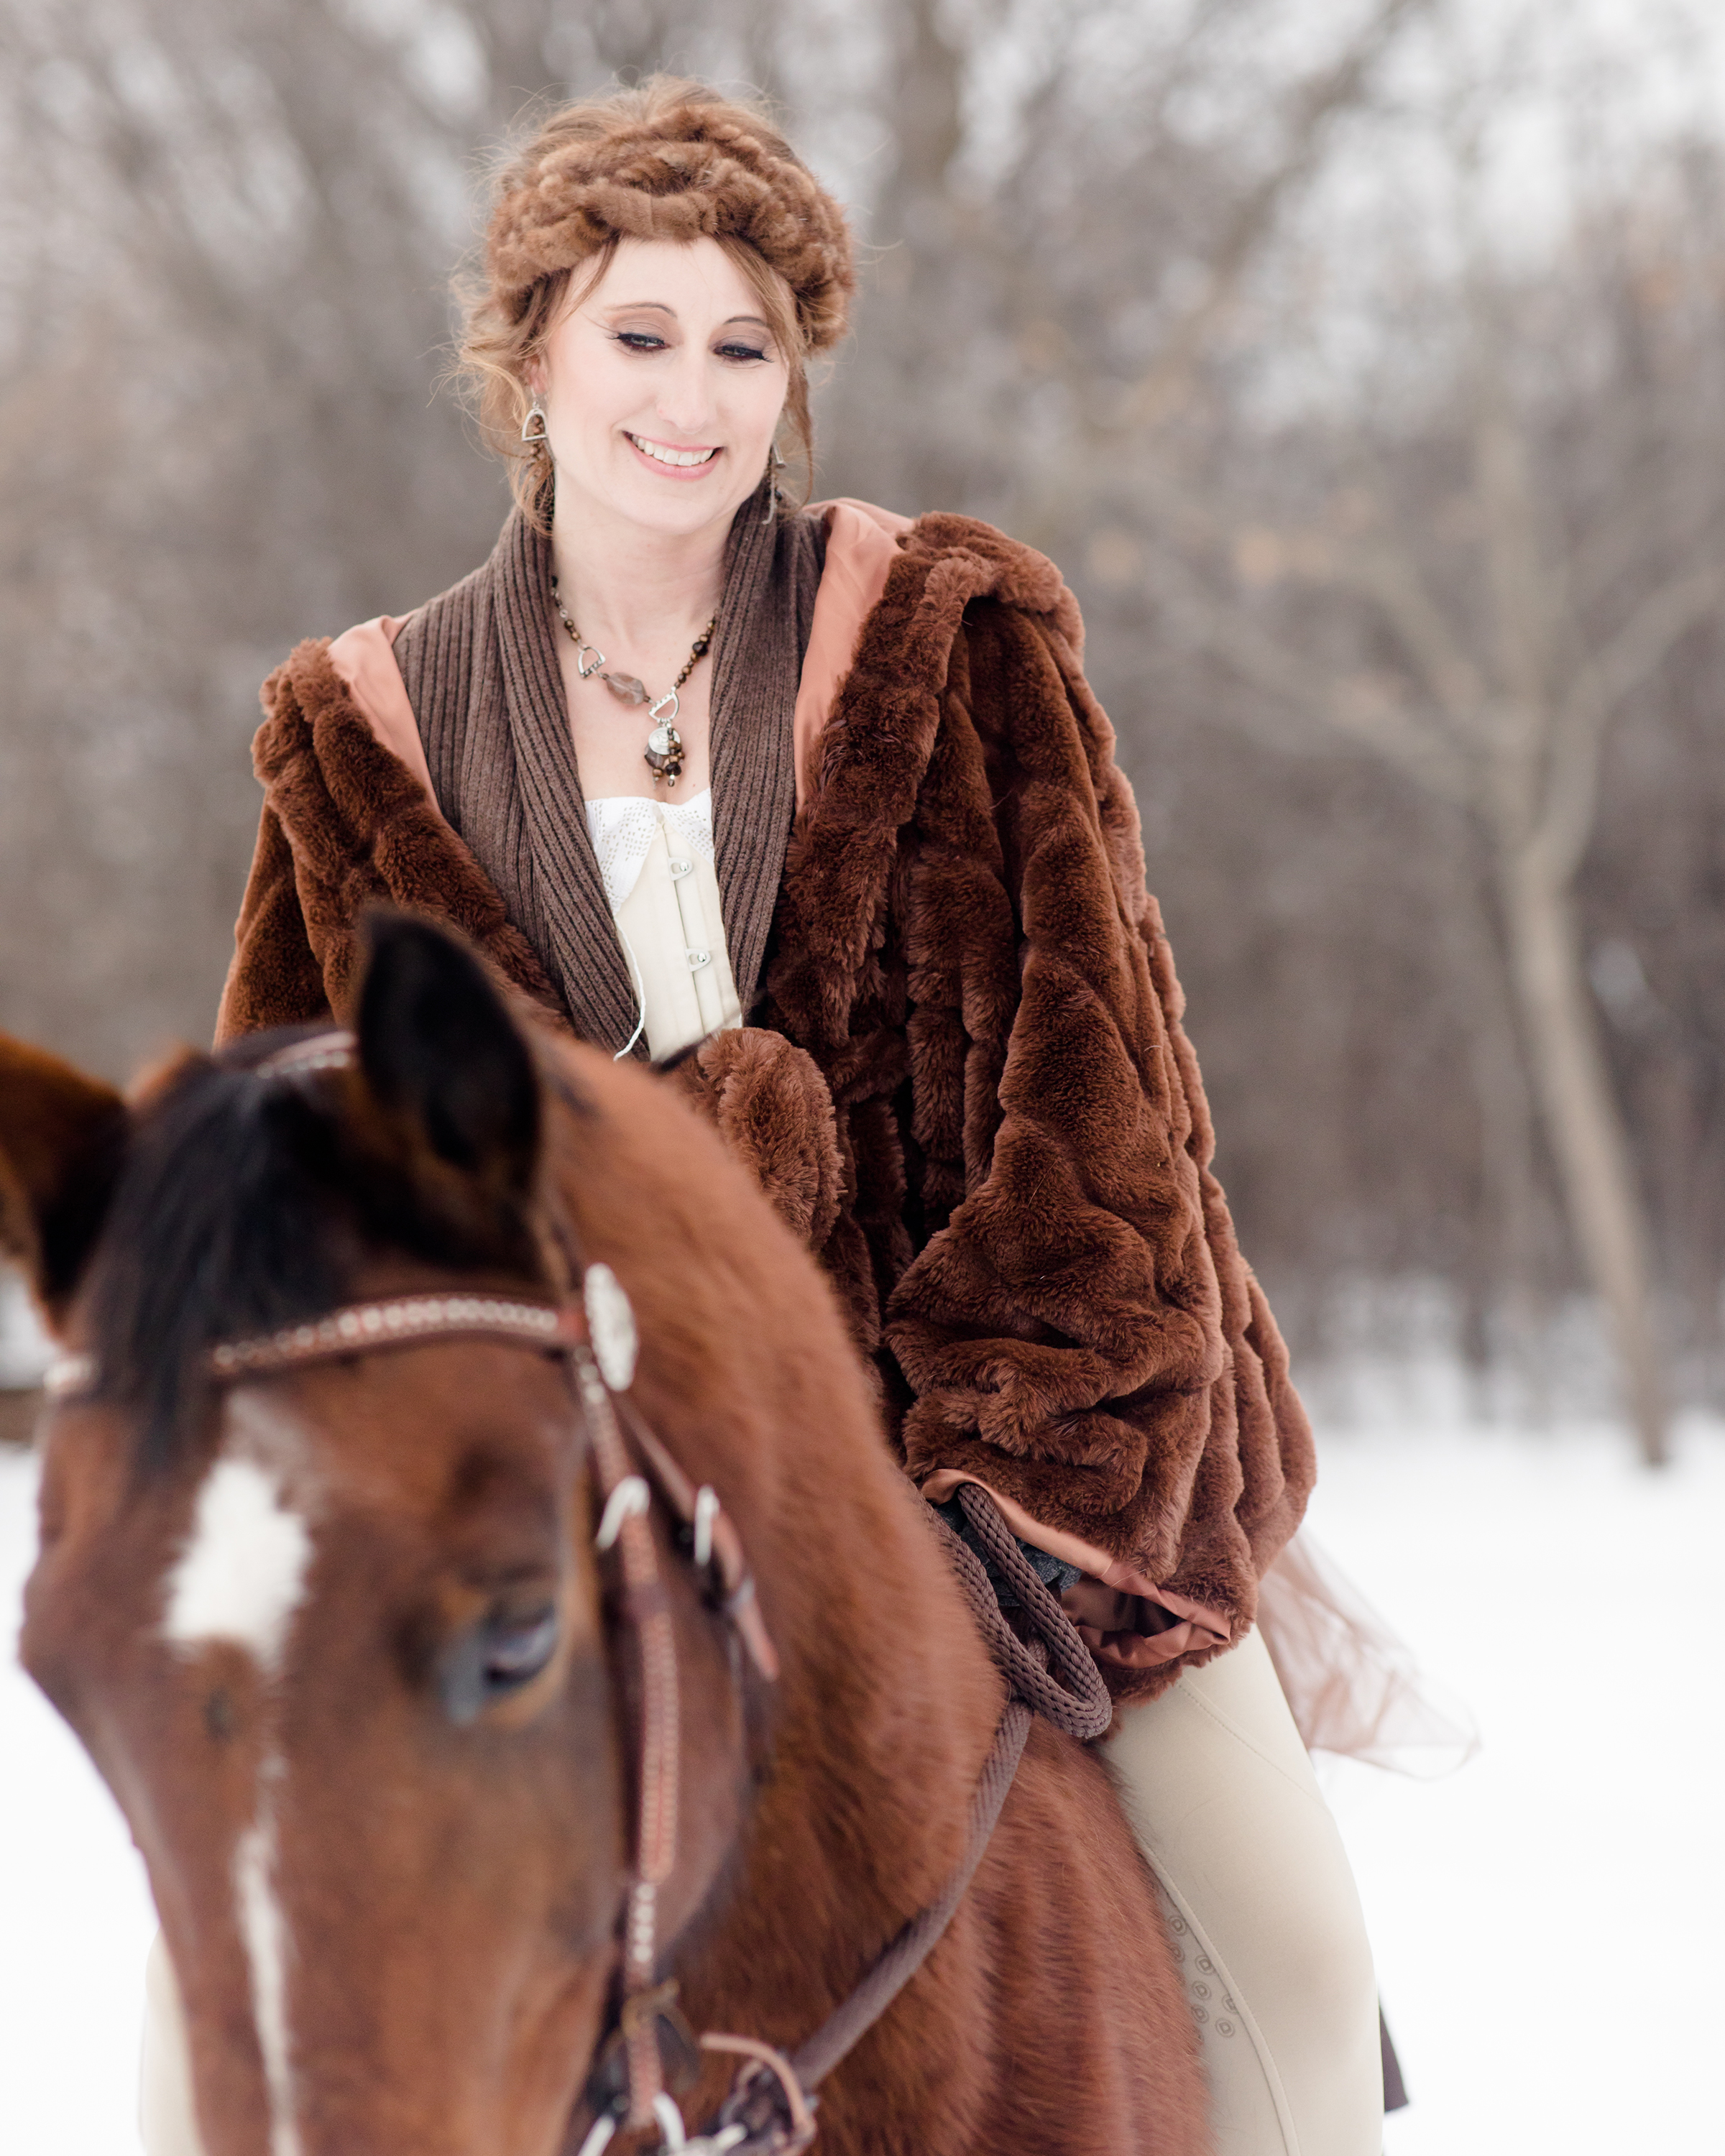 Wisconsin Winter Equestrian Photography